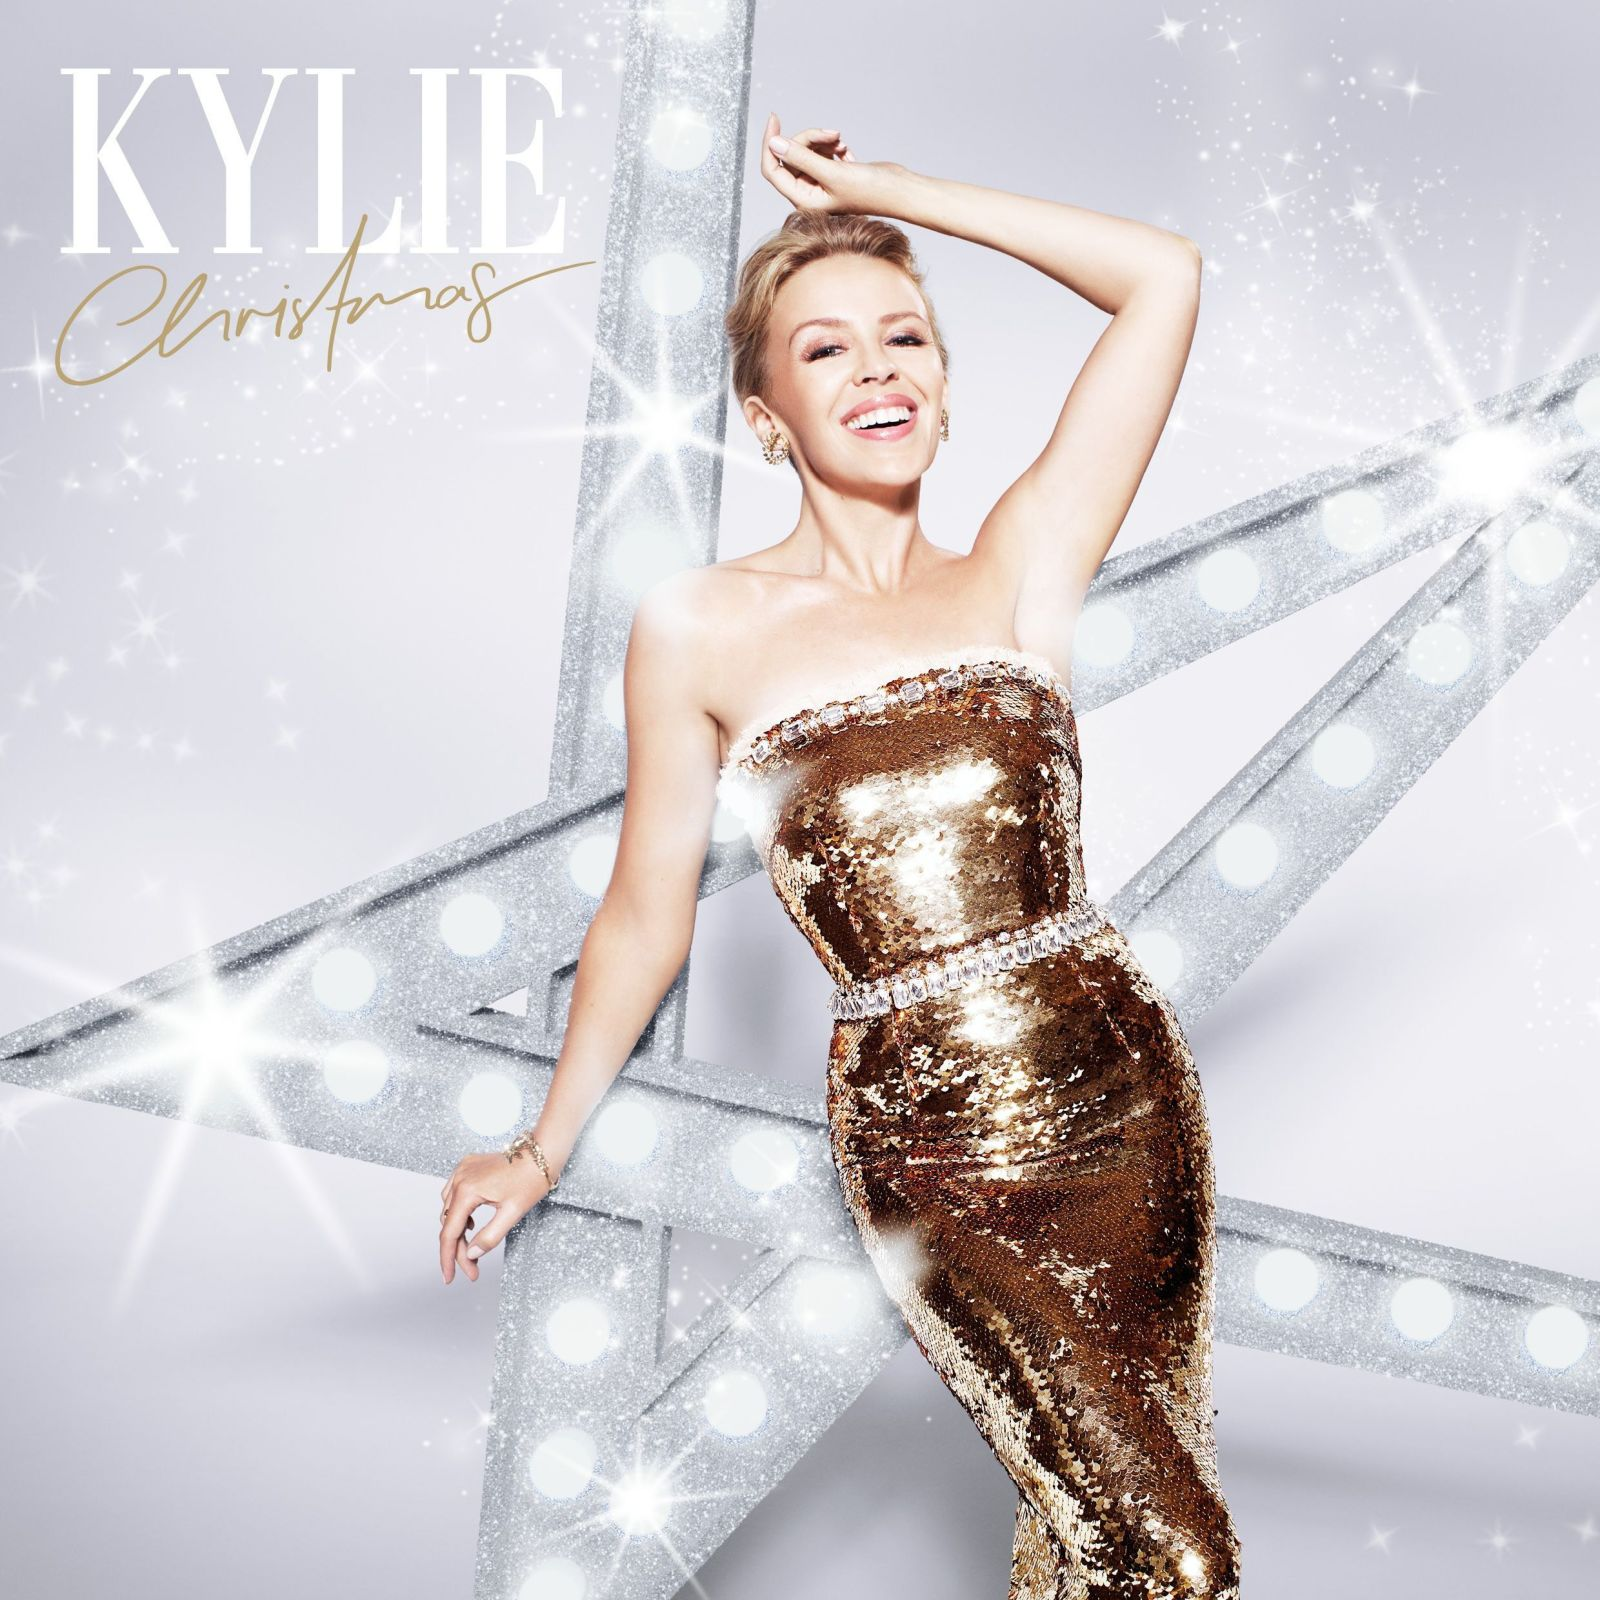 Kylie Minogue has released her first Christmas album and you can ...